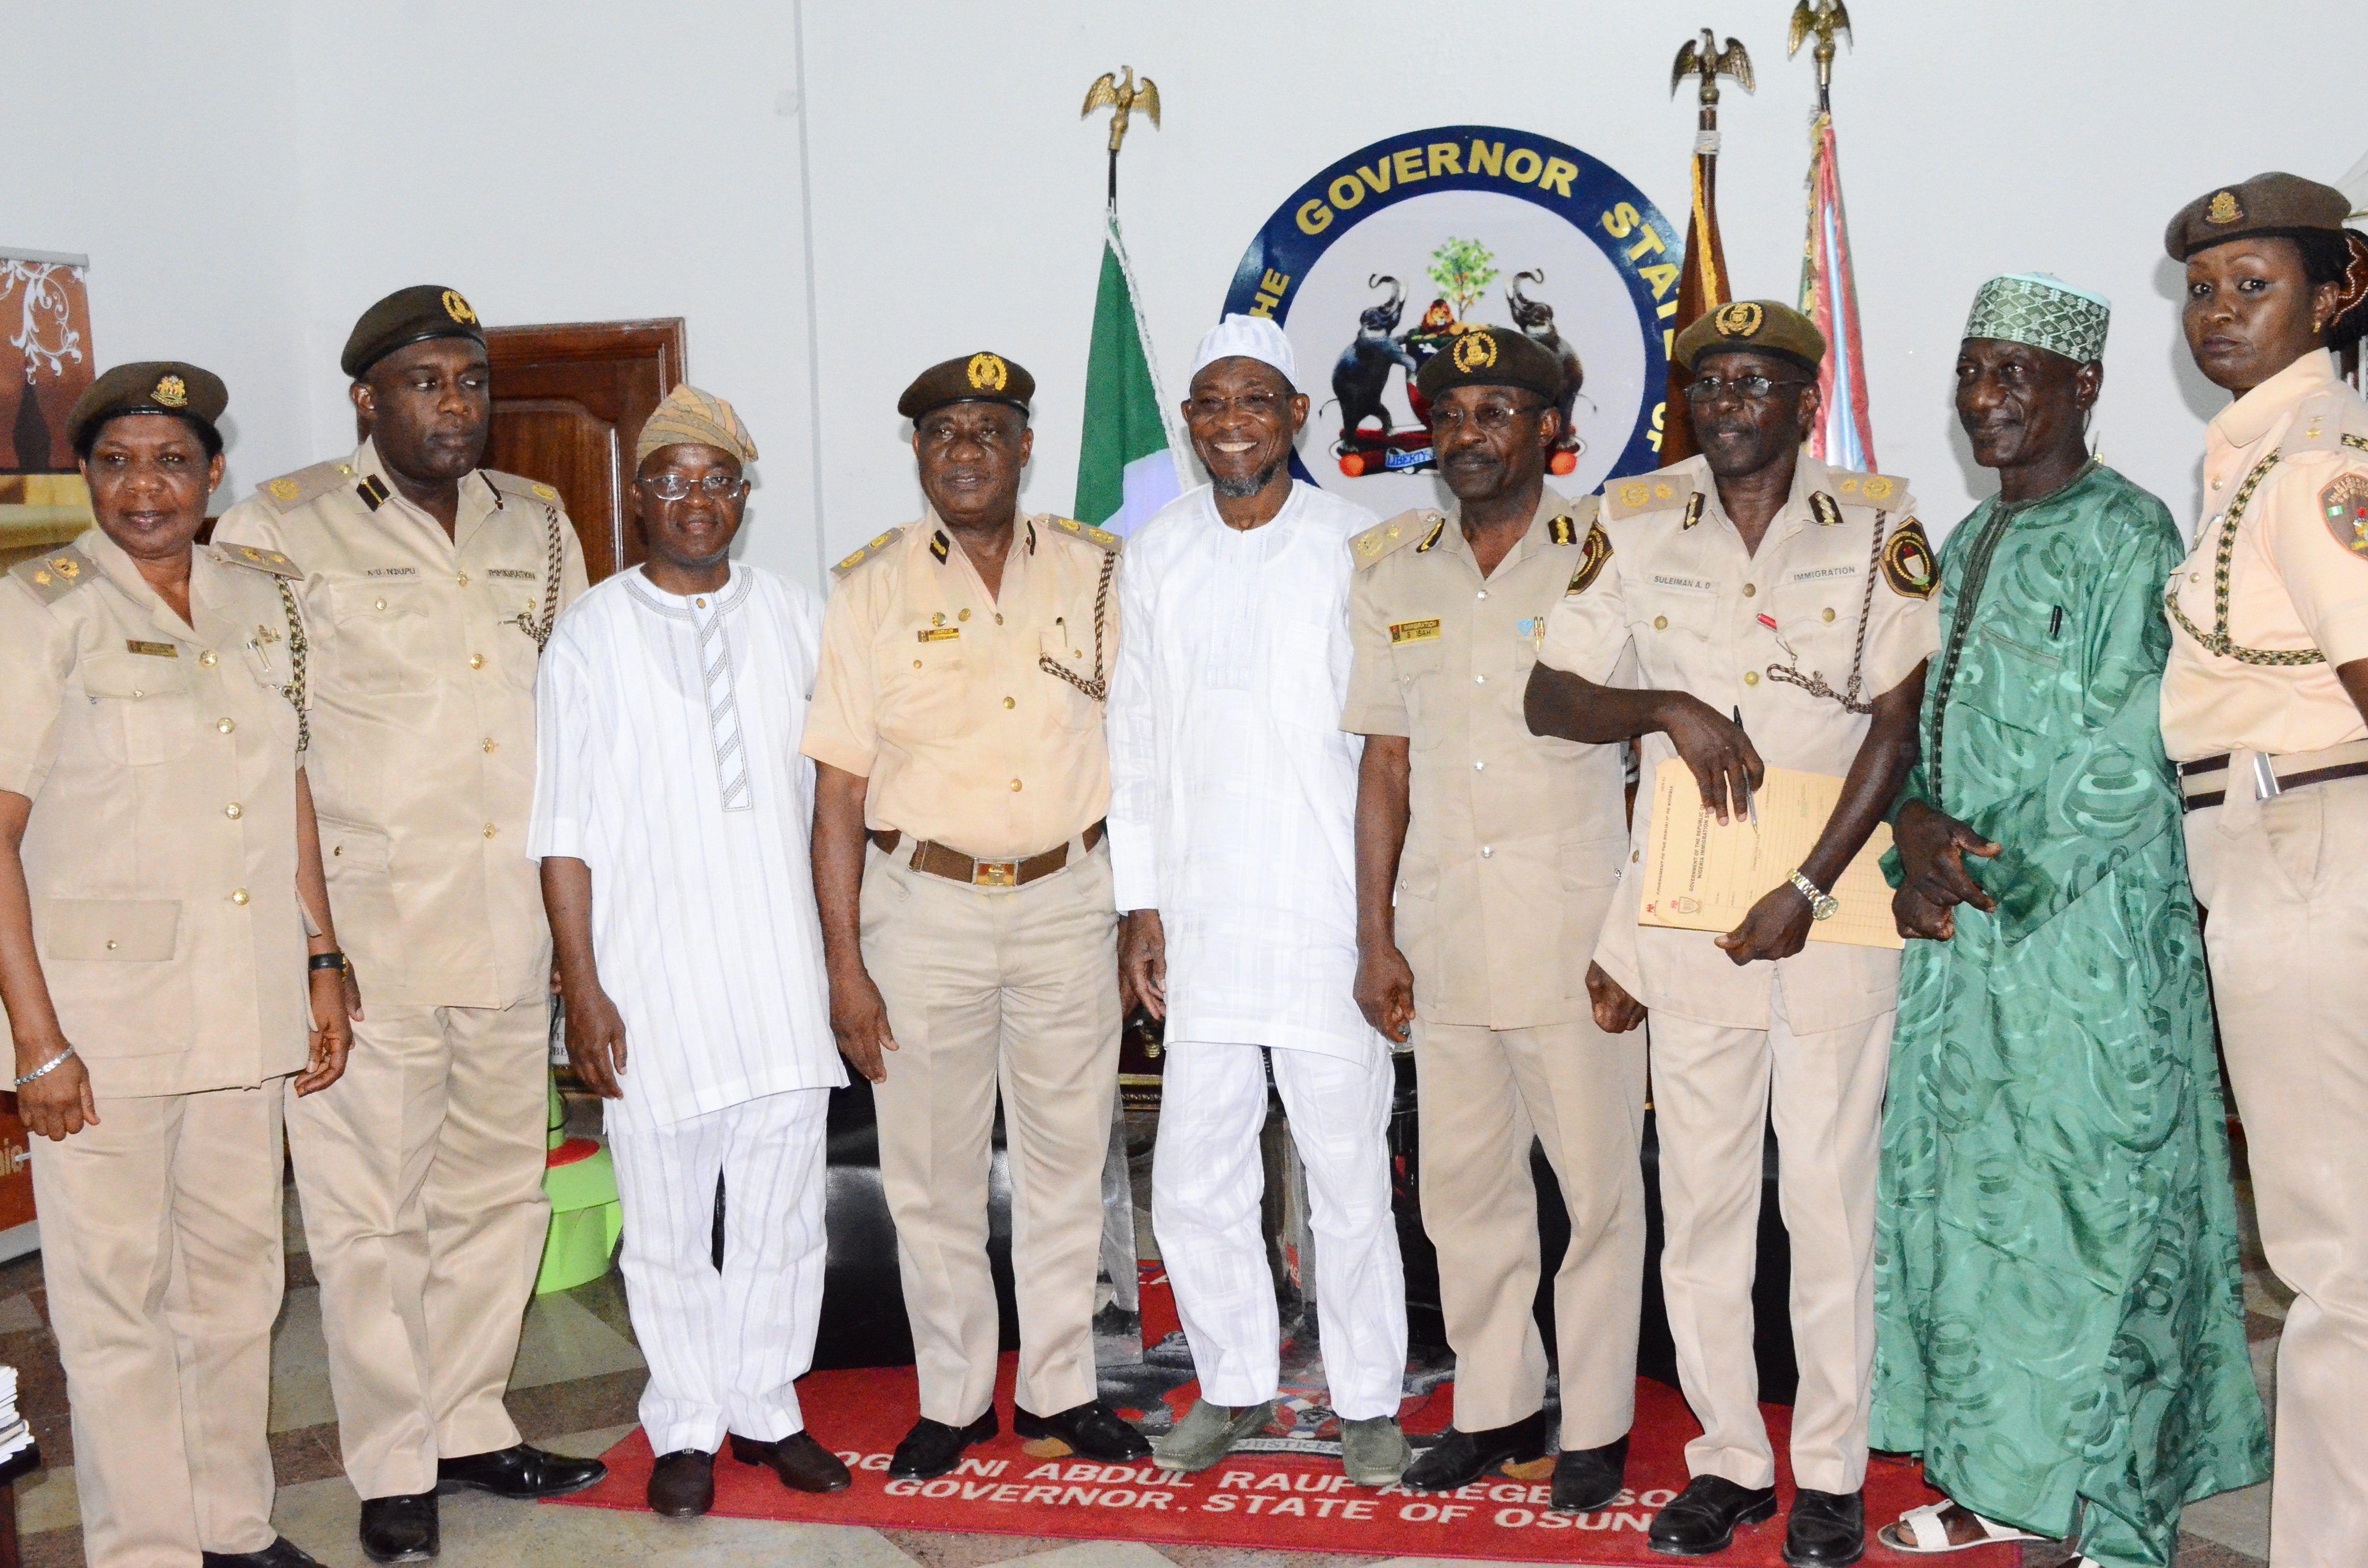 Governor State of Osun, Ogbeni Rauf Aregbesola (middle); Osun State Comptroller of Immigration, Mr. Onunwor Chris (4th left); Chief of Staff to the Governor, Alhaji Gboyega Oyetola (3rd left); Assistant Comptroller Economic Community of West African States (ECOWAS) and African Affairs, Mr. Ndupu Udoamaka (2nd left); Chief Superintendent of  Immigration, Mrs. Funmi Bewaji (left); Passport Control Officer of Immigration, Mr. Isah Salihu (4th right);  Deputy Comptroller of Immigration,  Mr. Aminu Suliman (3rd right); Assistant Comptroller of Investigation of Immigration, Mr. Shehu Usman Adamu (2nd right) and Public Relations Officer (PRO), Mrs. Inibokun Famiyide during a Courtesy Visit to the Governor at Government House, Osogbo on Thursday 19/02/2015.